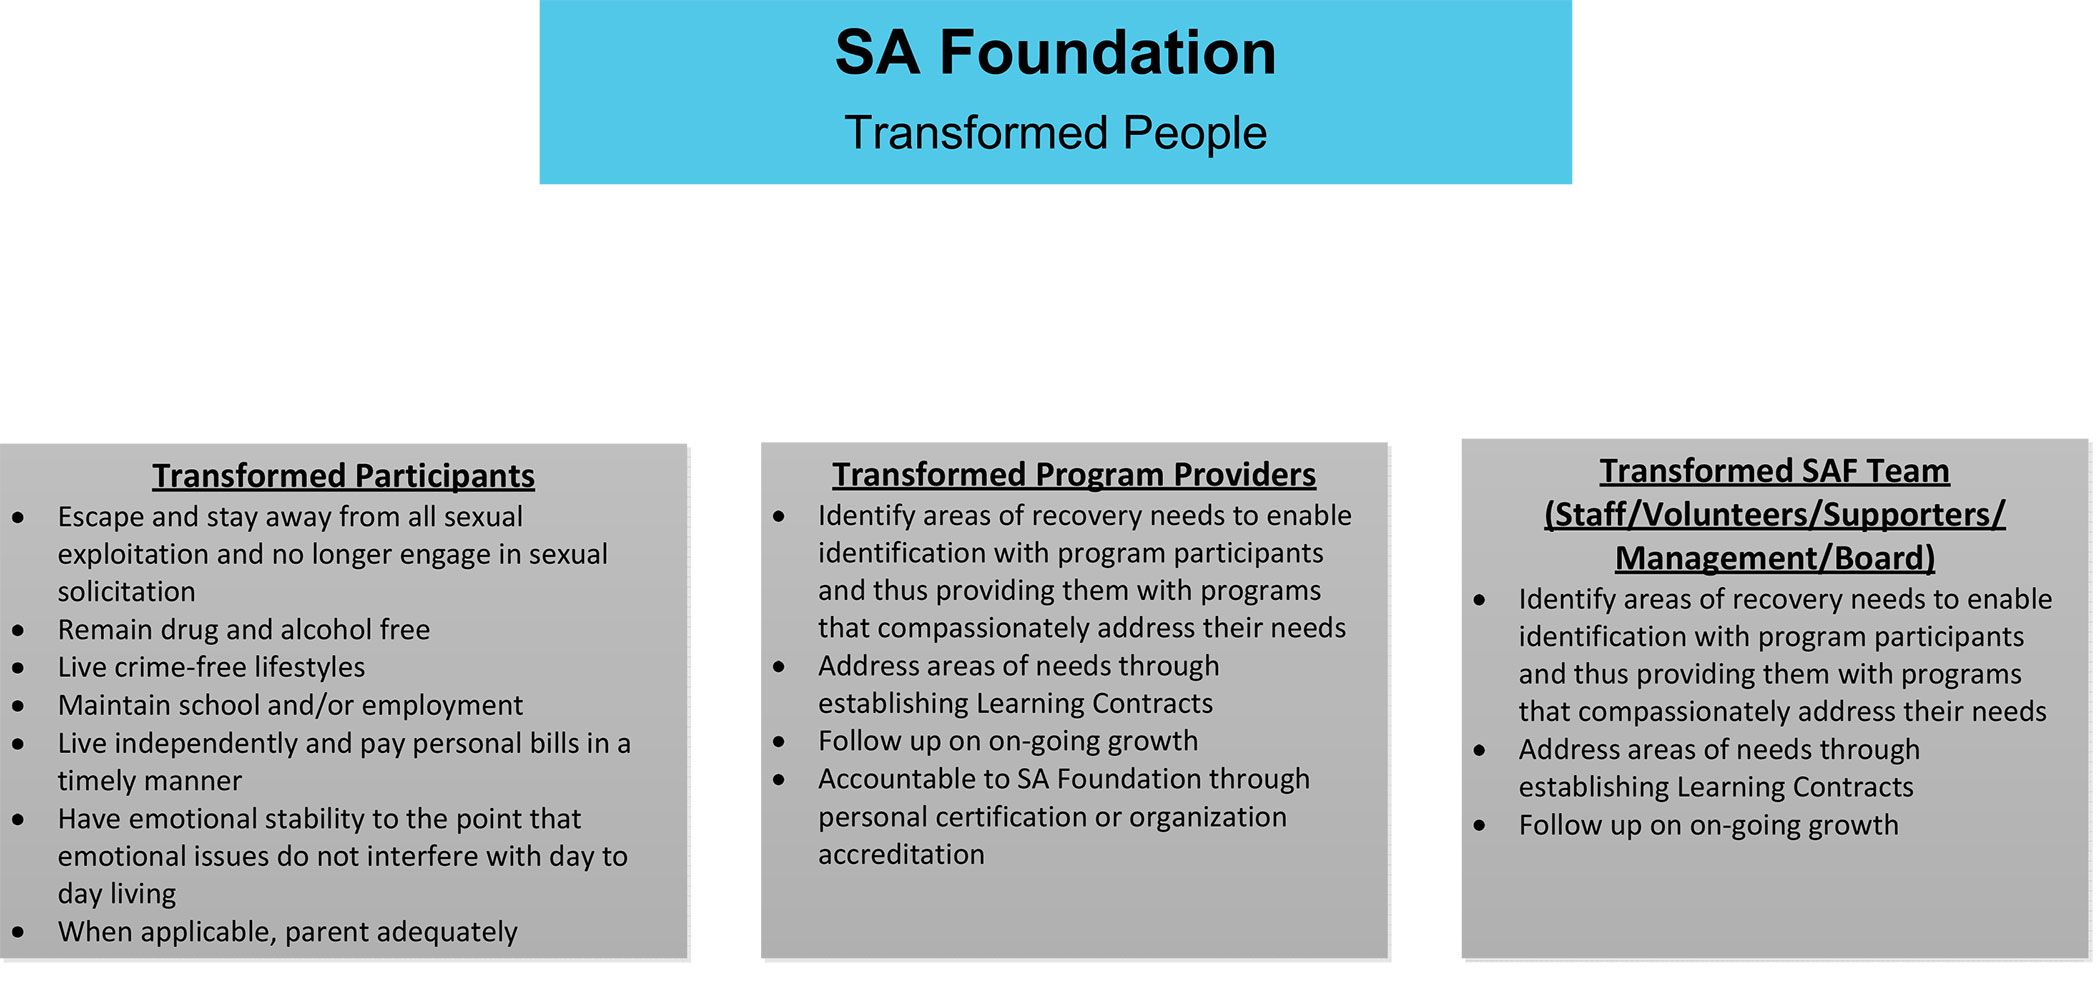 SAF---Transformation-Process---the-People